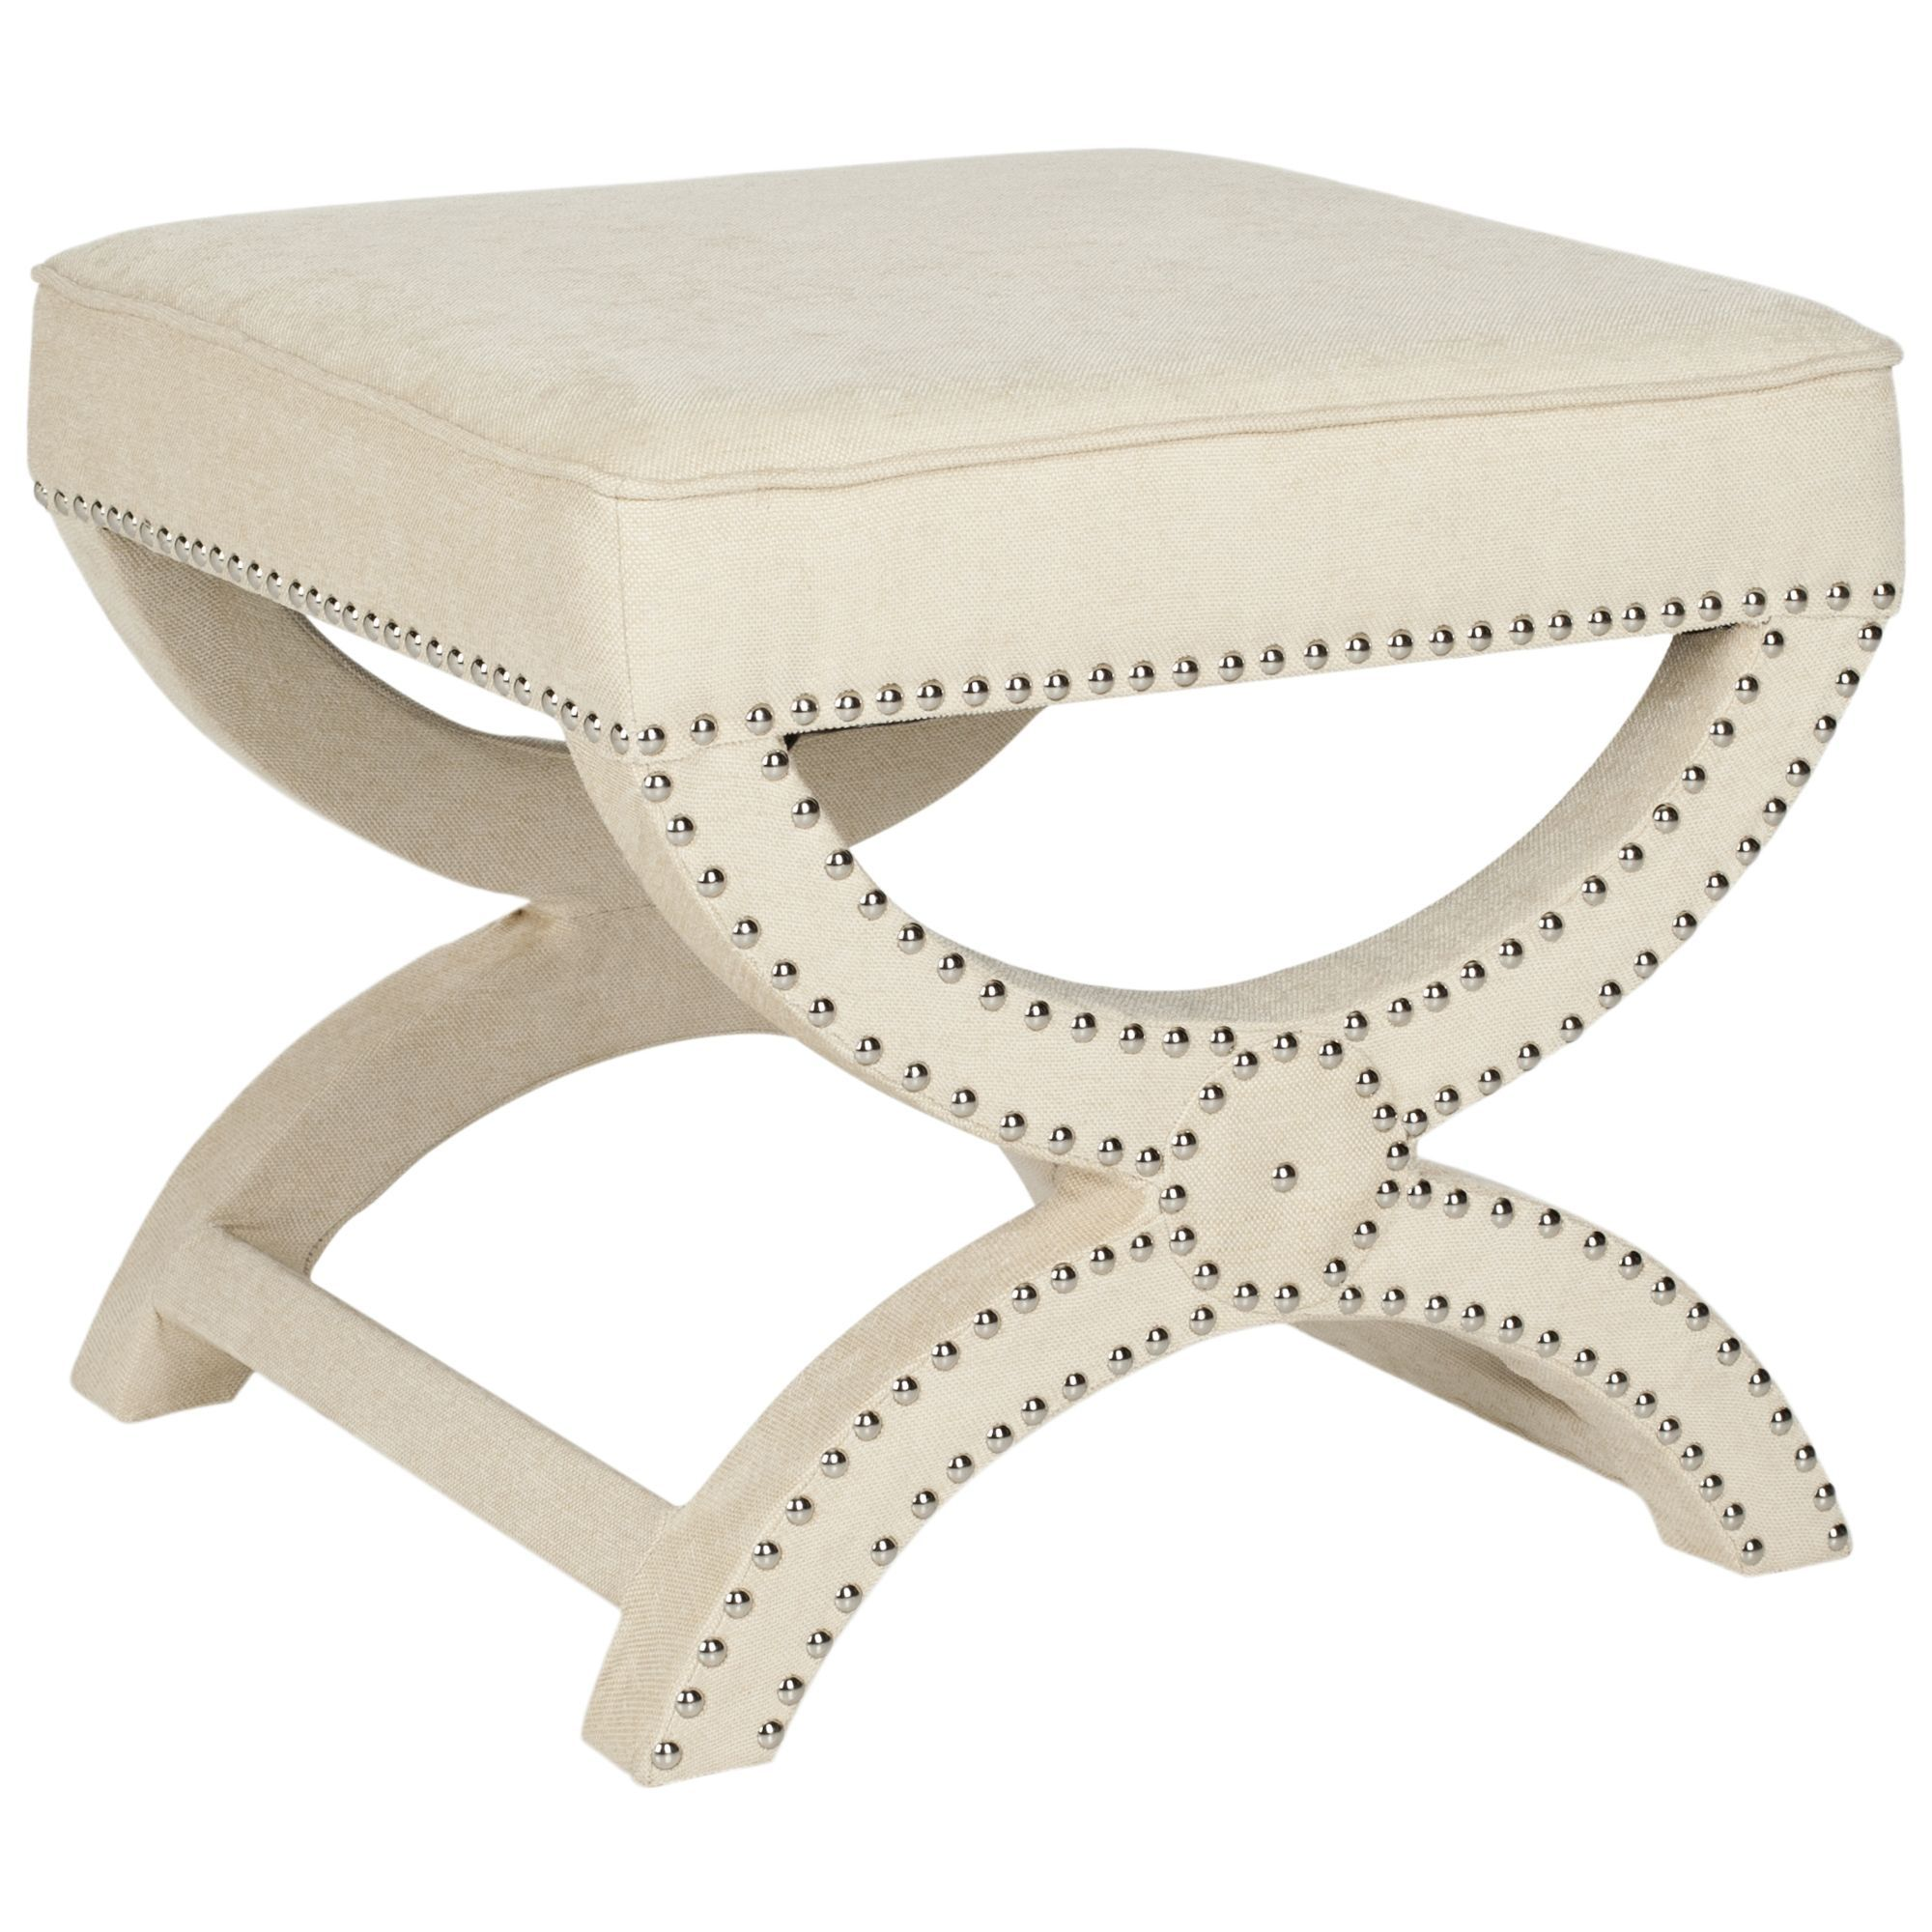 Safavieh dante x bench cream ottoman mcr4645a beige off white size small fabric